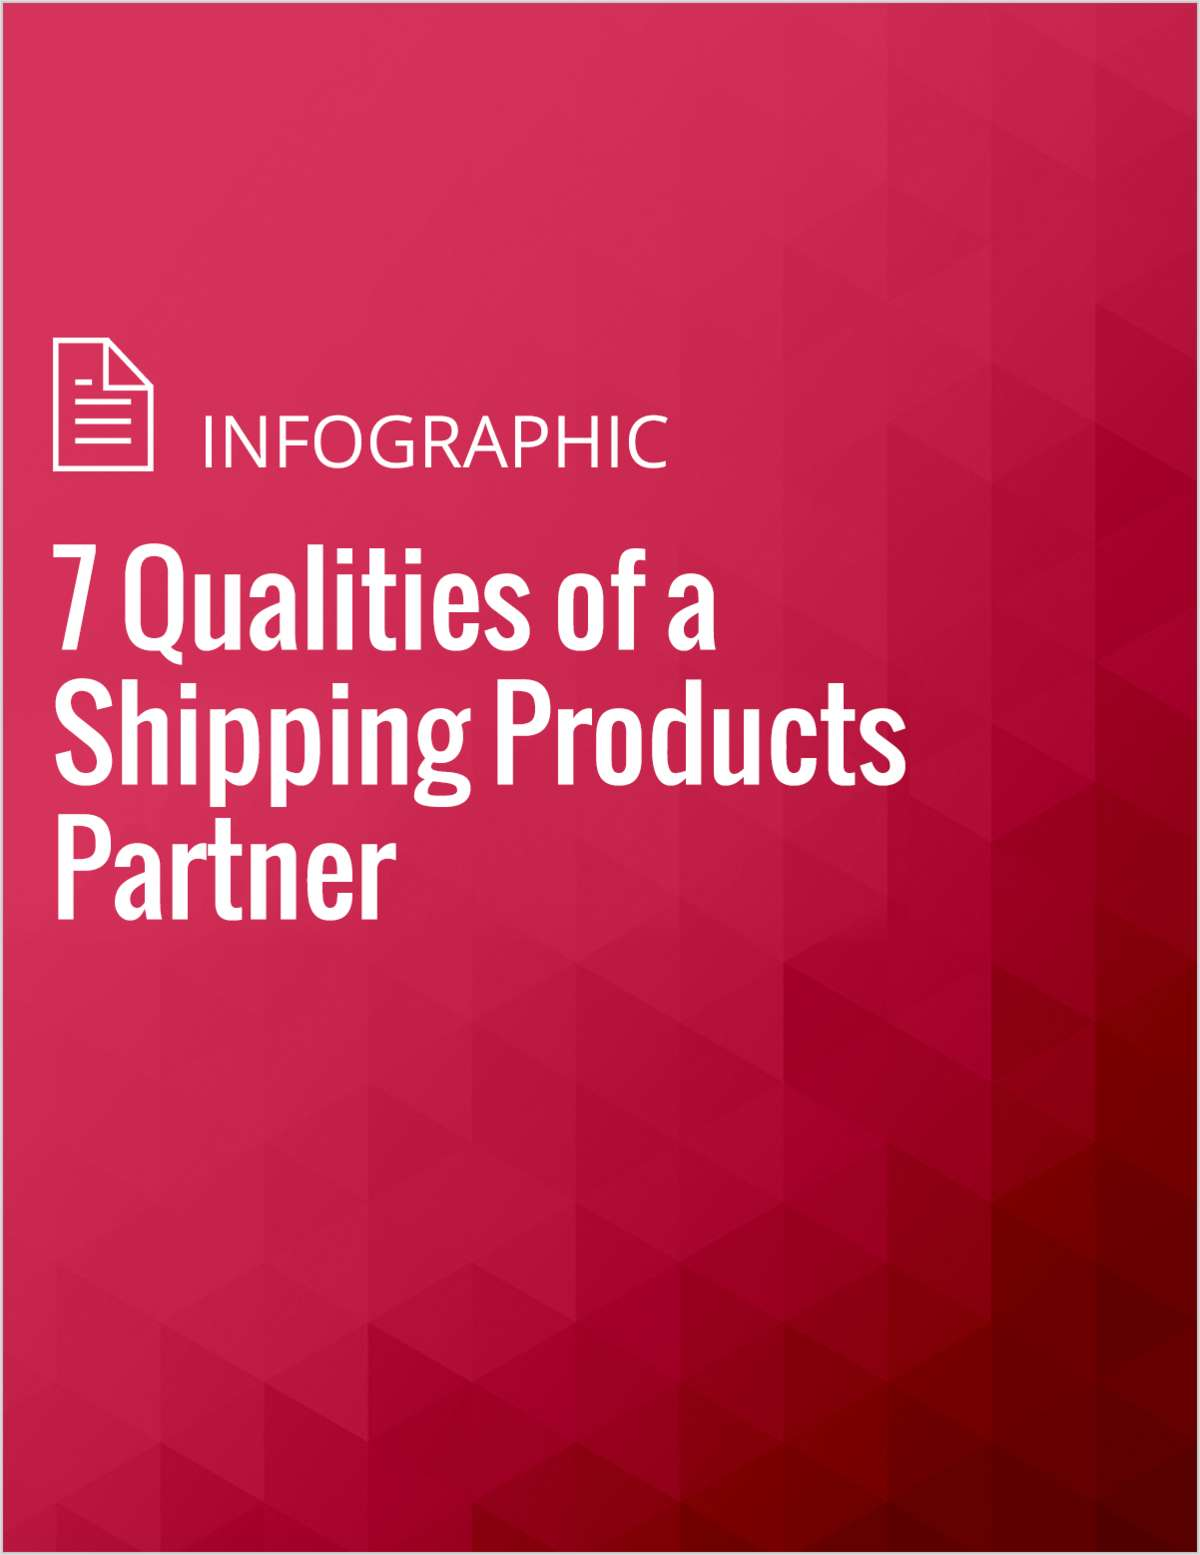 7 Qualities of a Shipping Products Partner